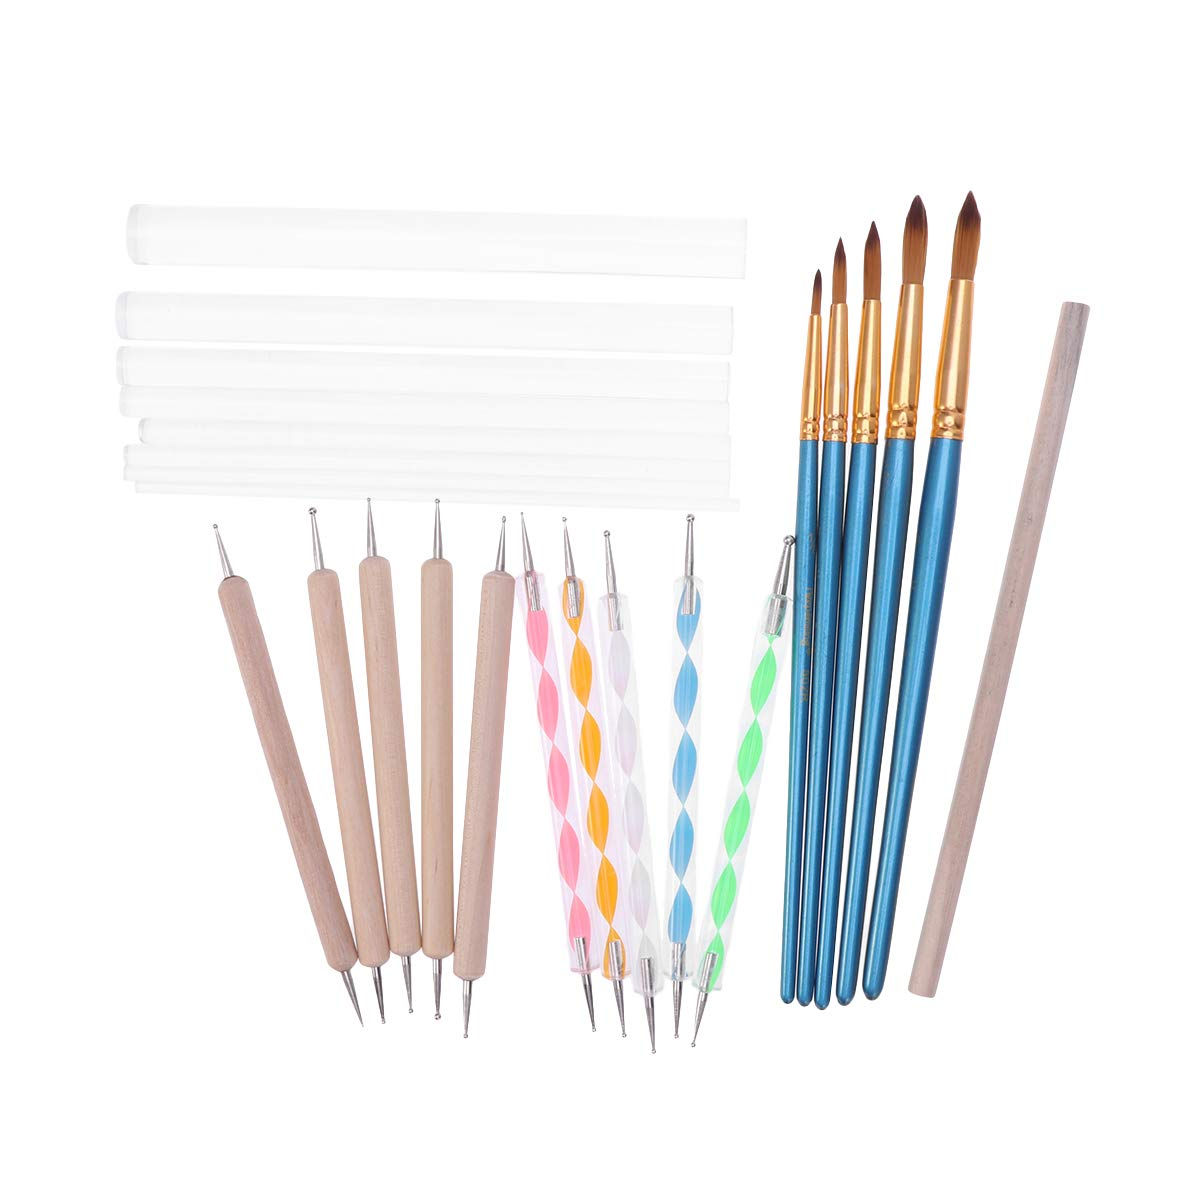 STOBOK Silicone Color Shapers Dotting Tools Sculpting Painting Brushes Kit - 24Pcs by STOBOK